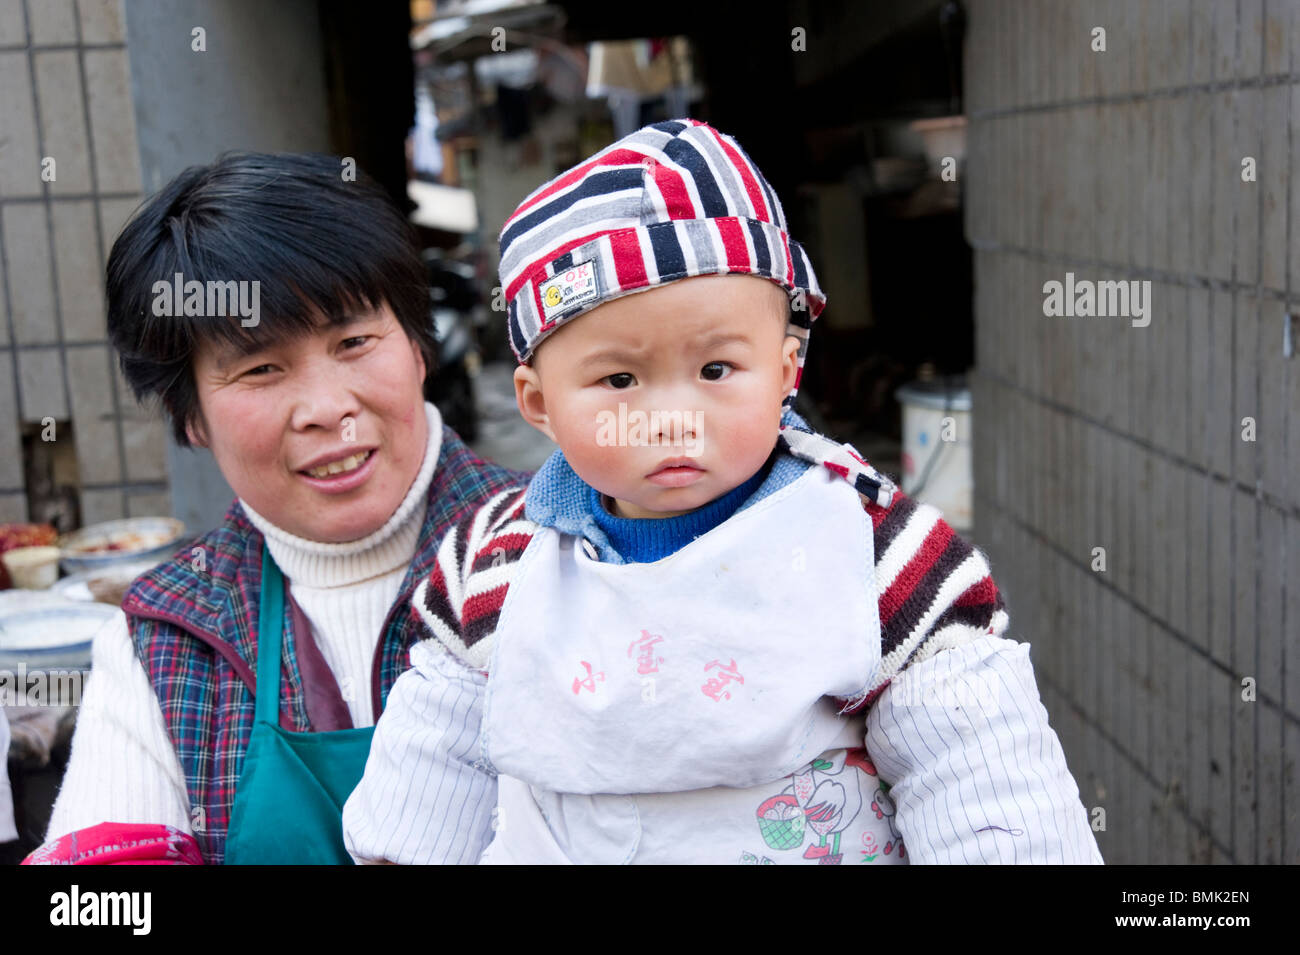 Cute baby in the Old City, Shanghai, China - Stock Image